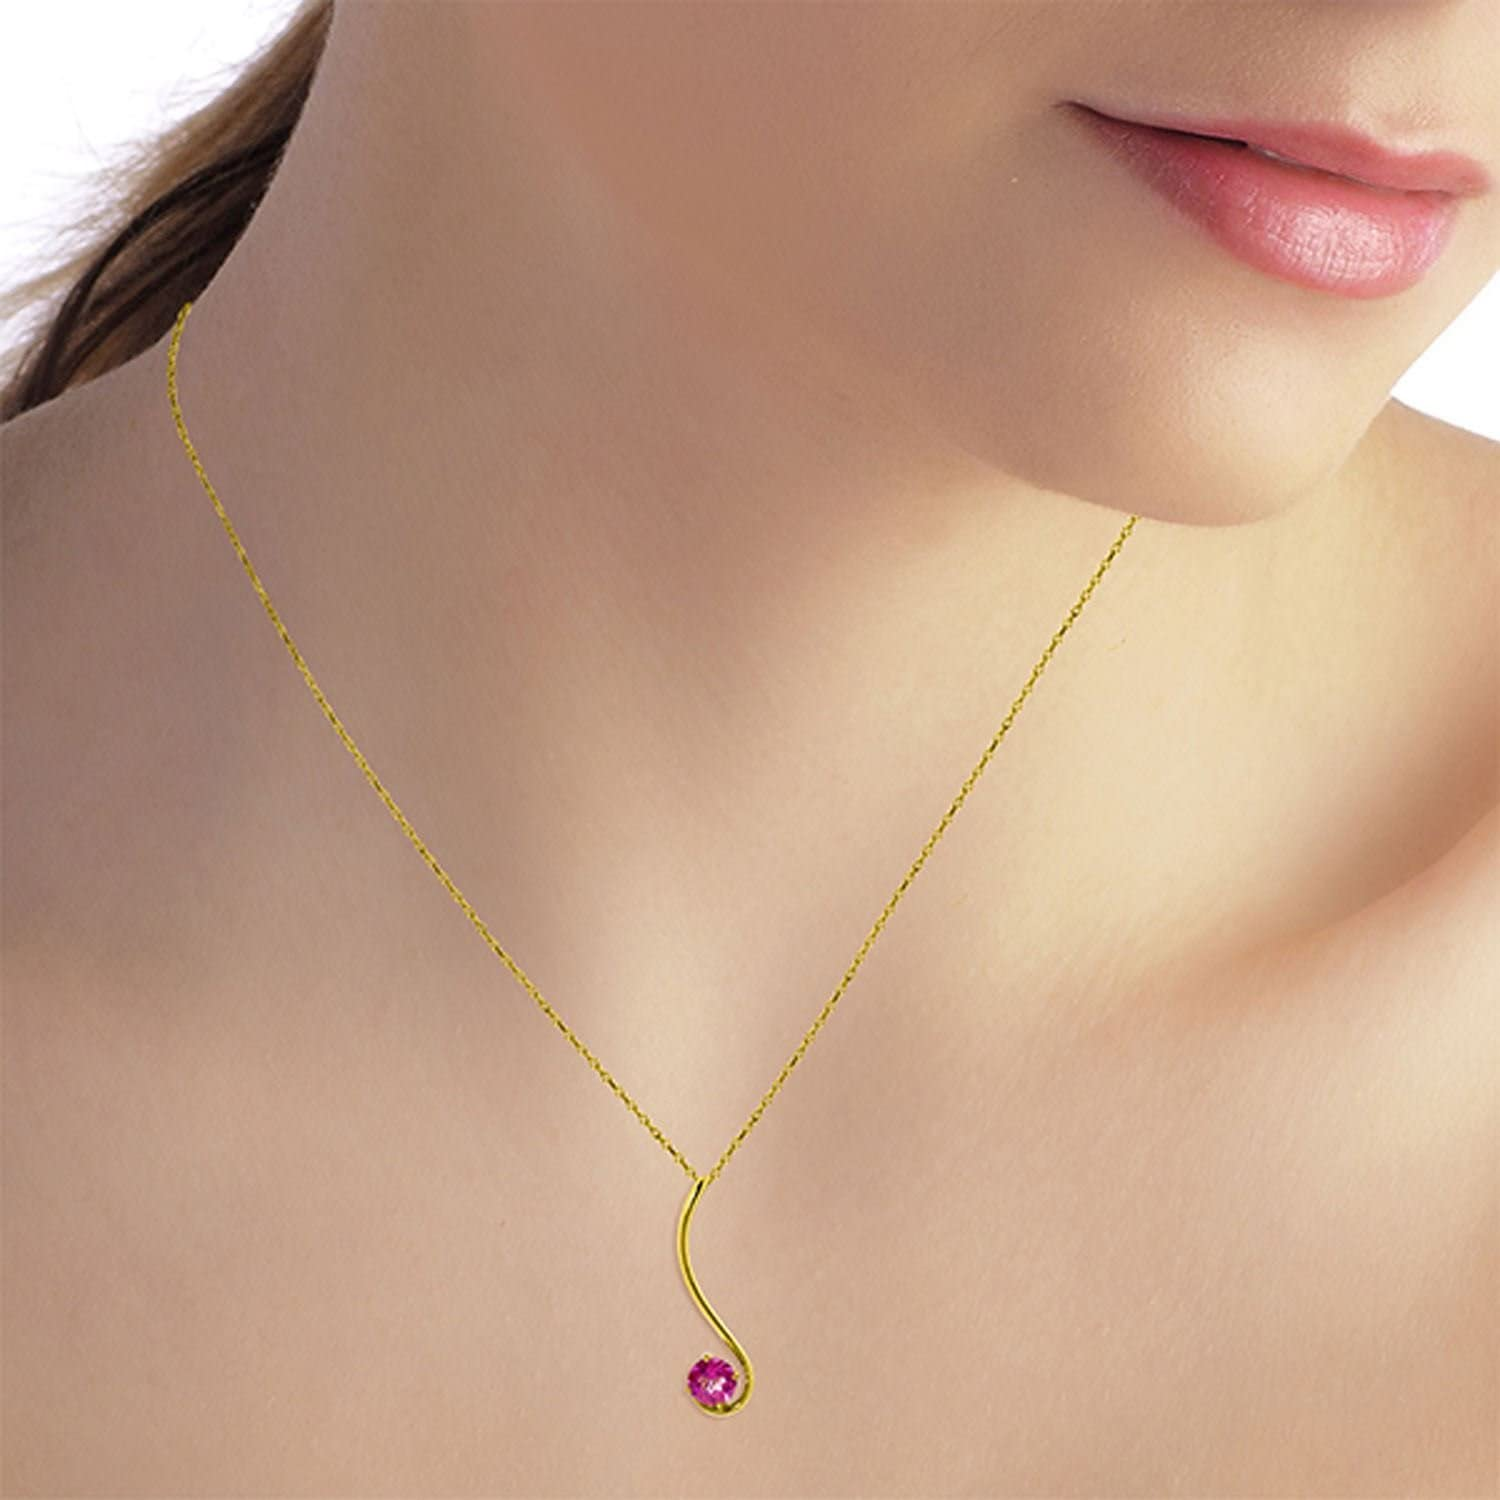 ALARRI 0.55 Carat 14K Solid Gold Pink Anemones Pink Topaz Necklace with 20 Inch Chain Length